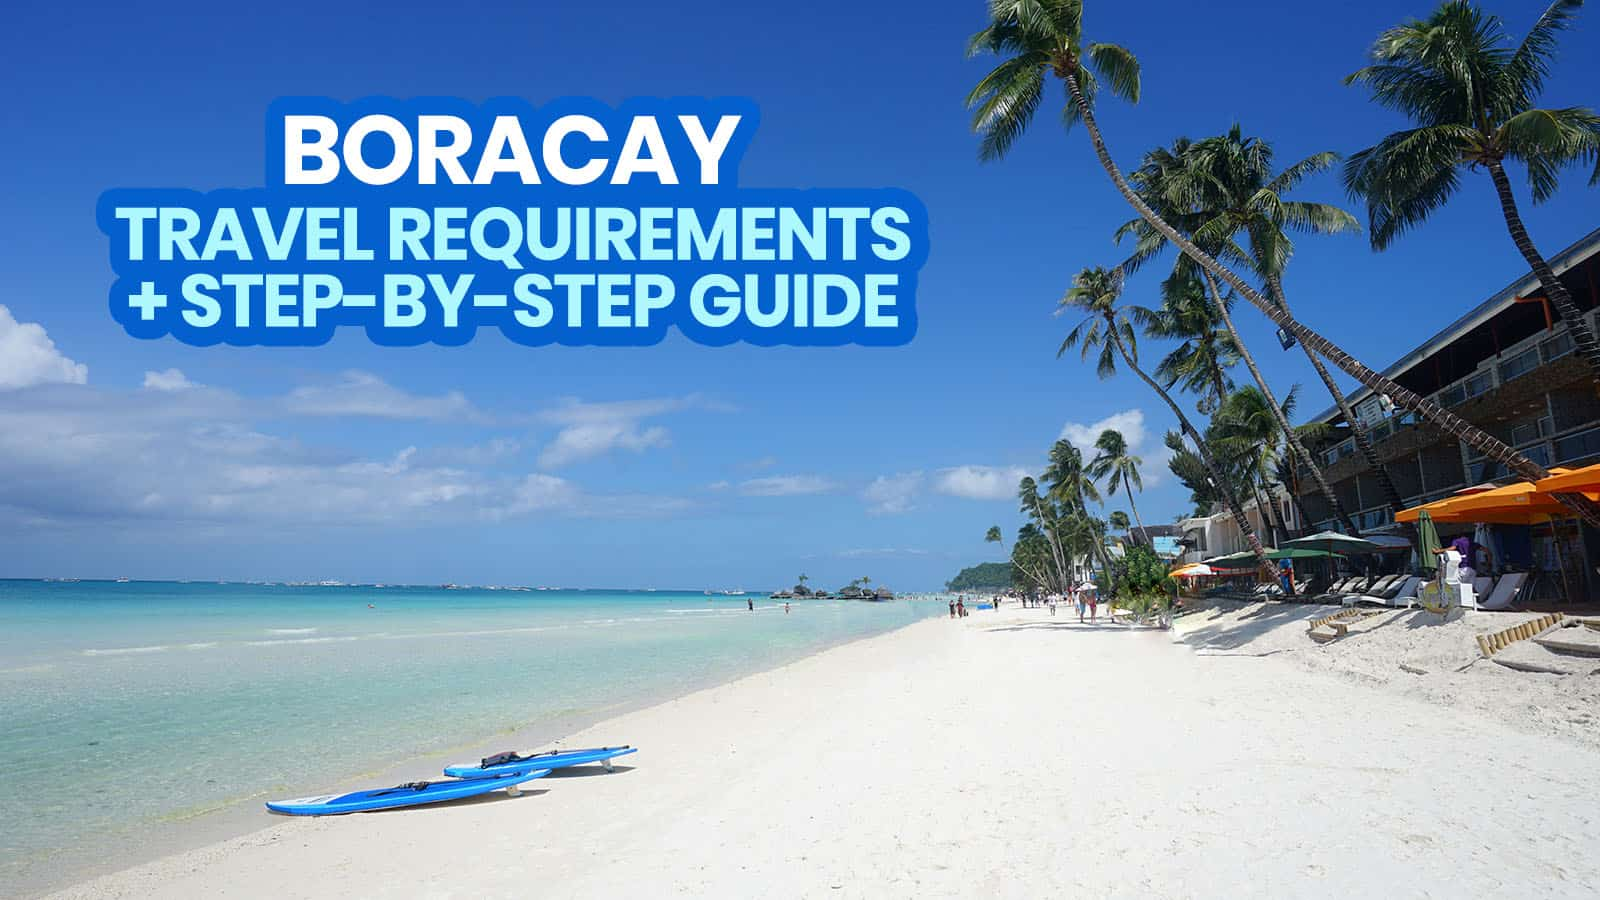 HOW TO VISIT BORACAY: 2021 Step-by-Step Process + Tourist Requirements